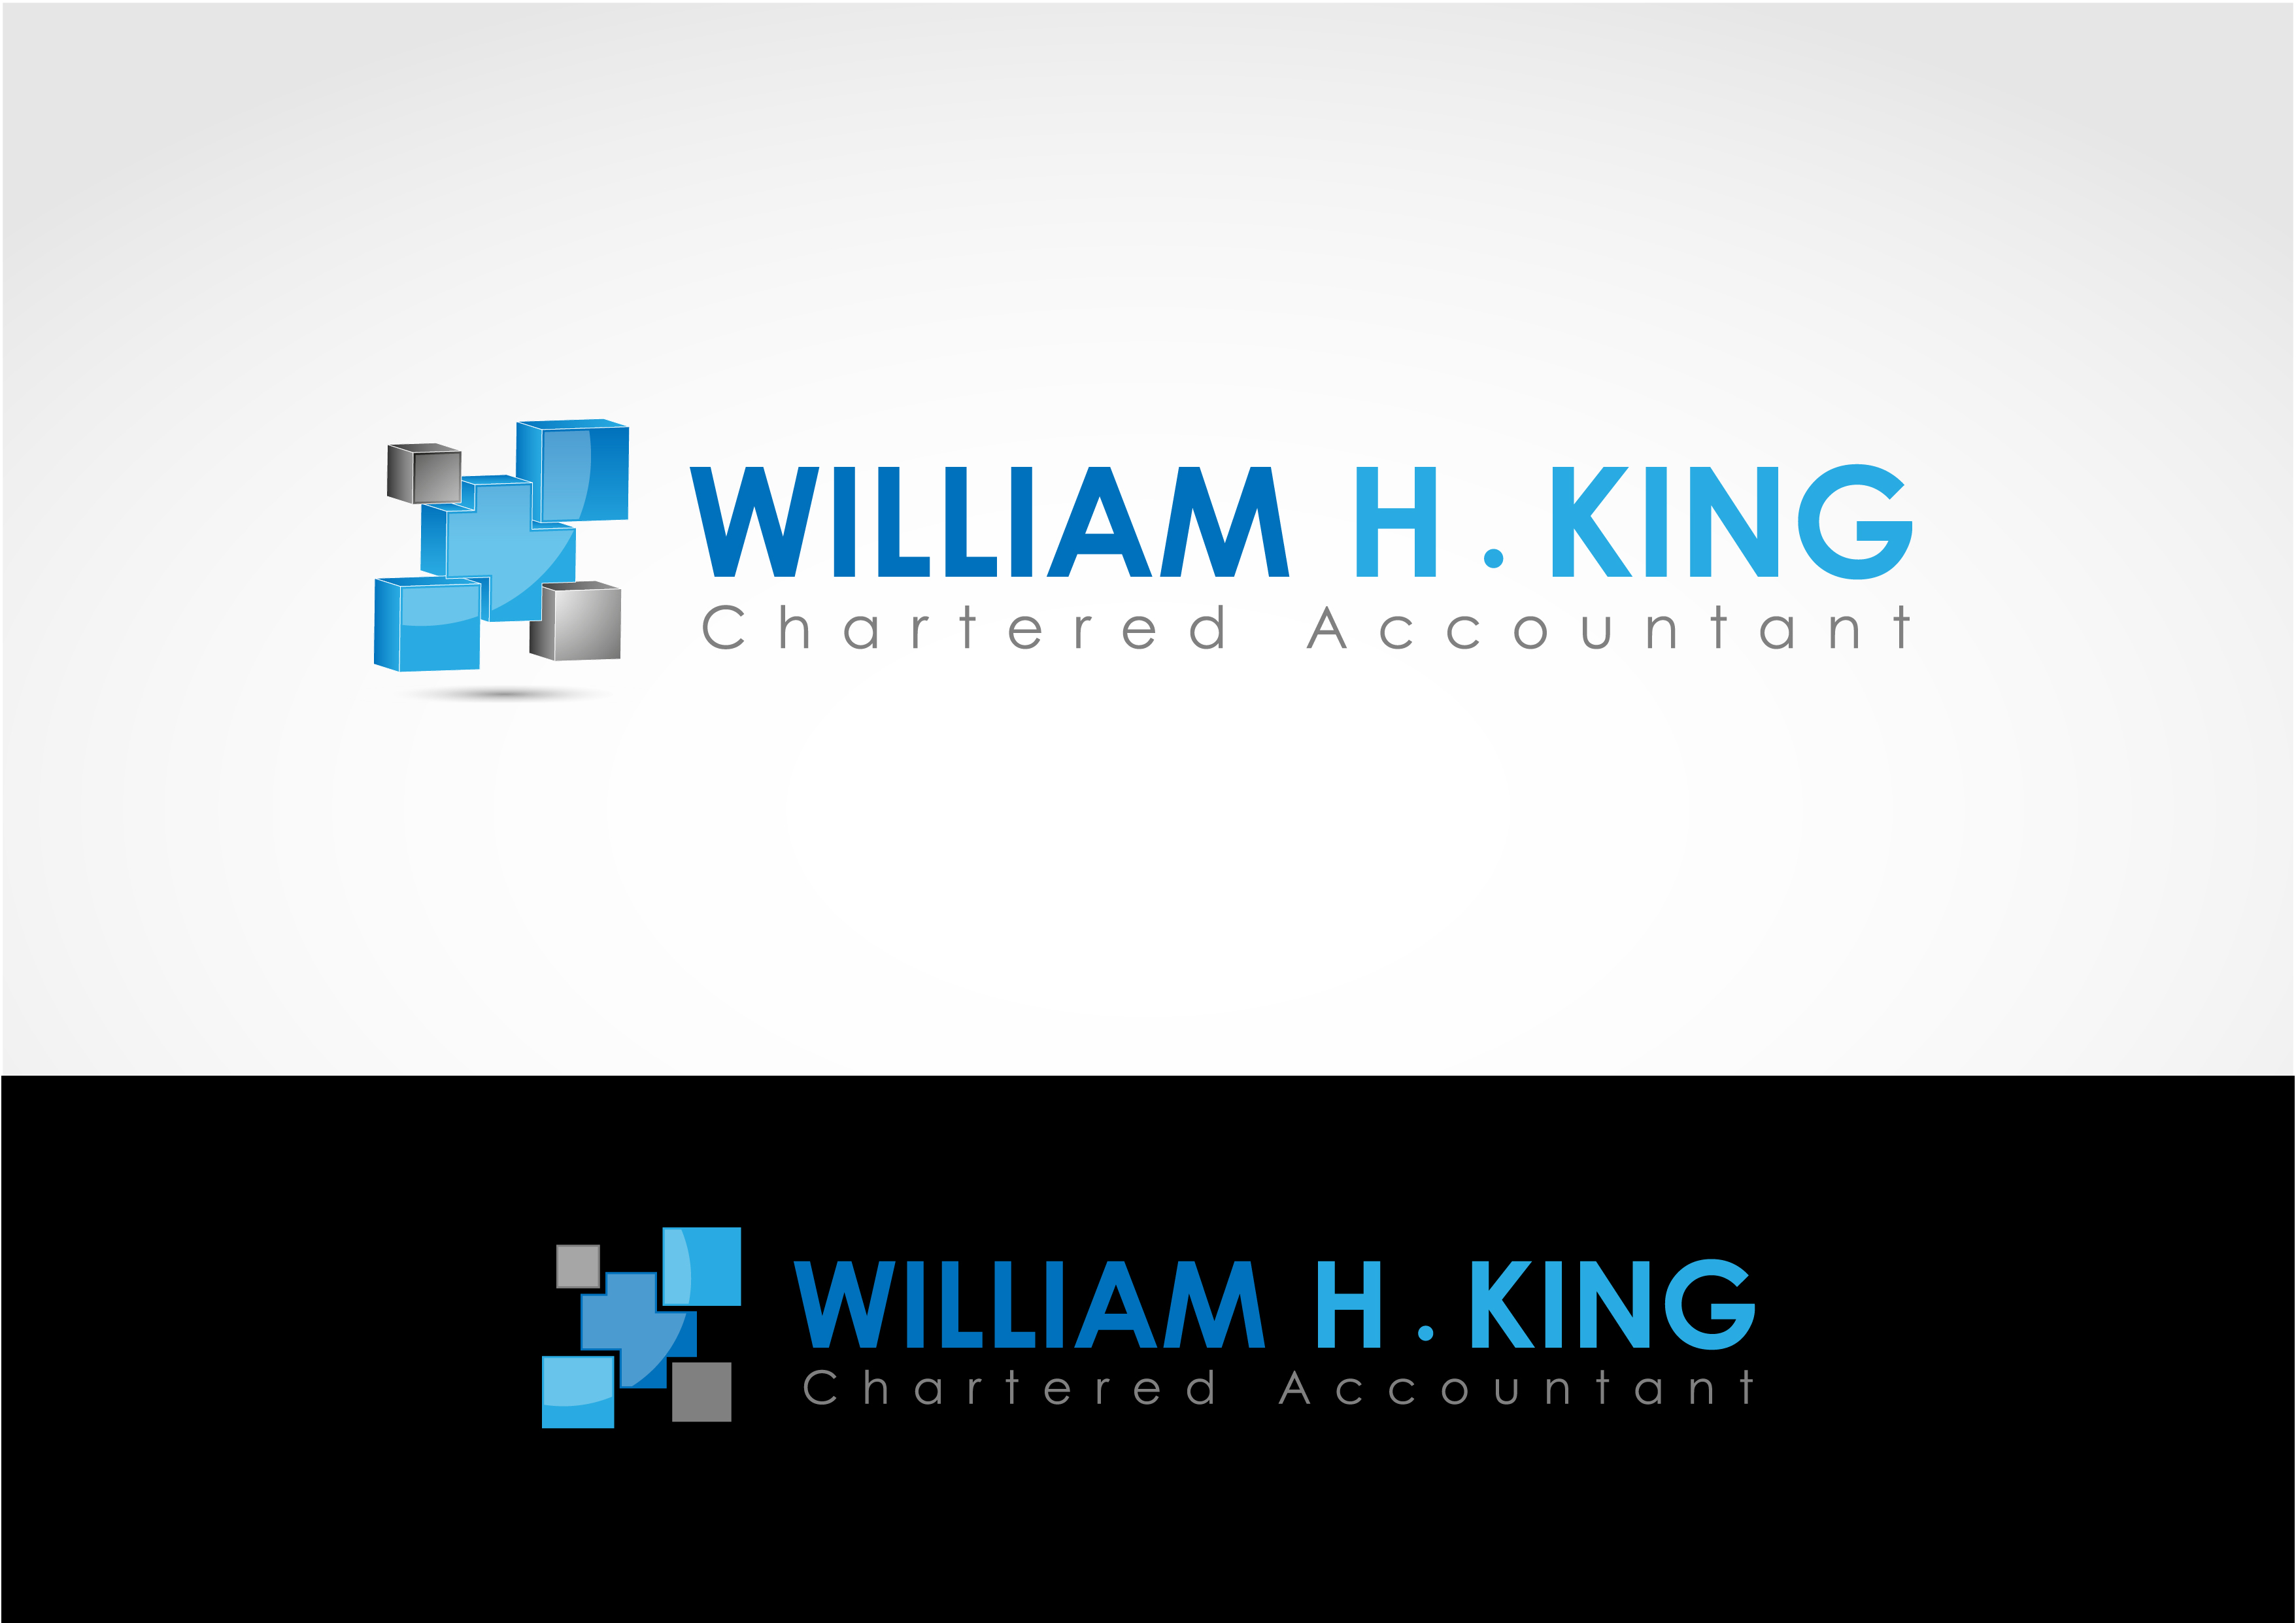 Logo Design by 3draw - Entry No. 21 in the Logo Design Contest New Logo Design for William H. King, Chartered Accountant.